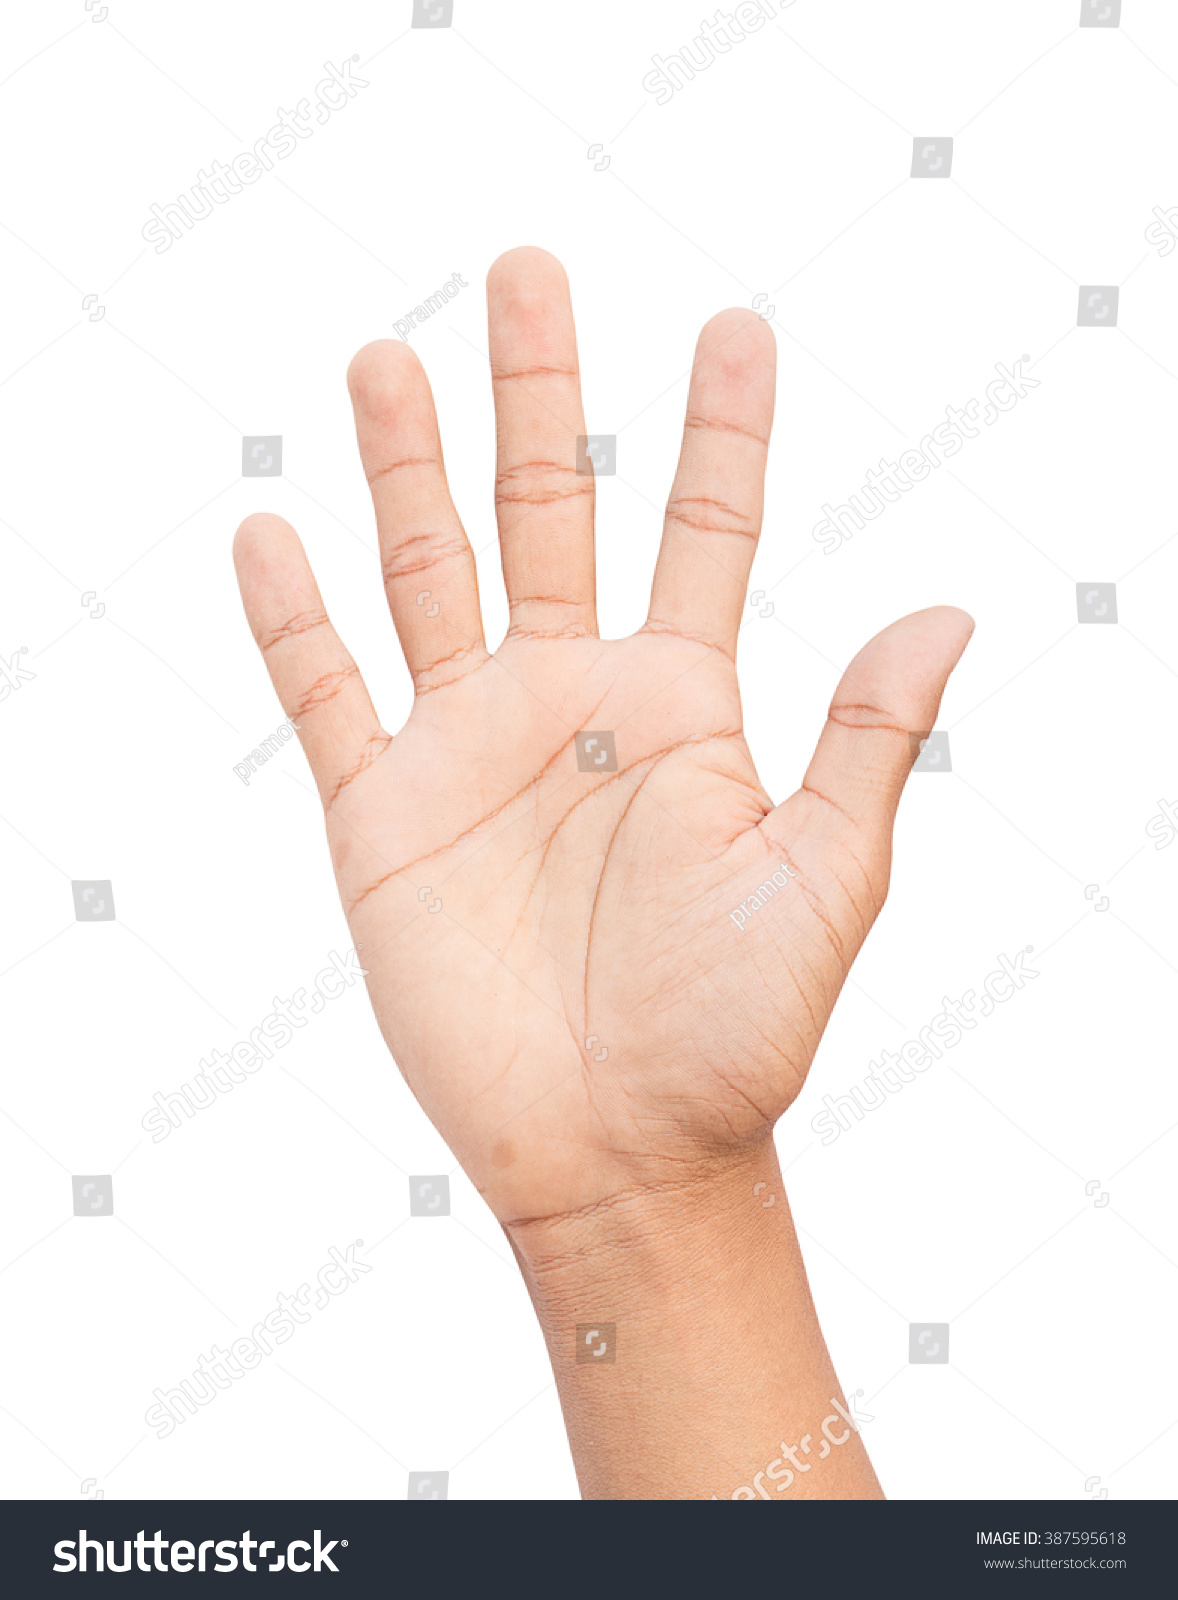 Symbol Sign Language Tell Symbol By Hand Clipping Path And